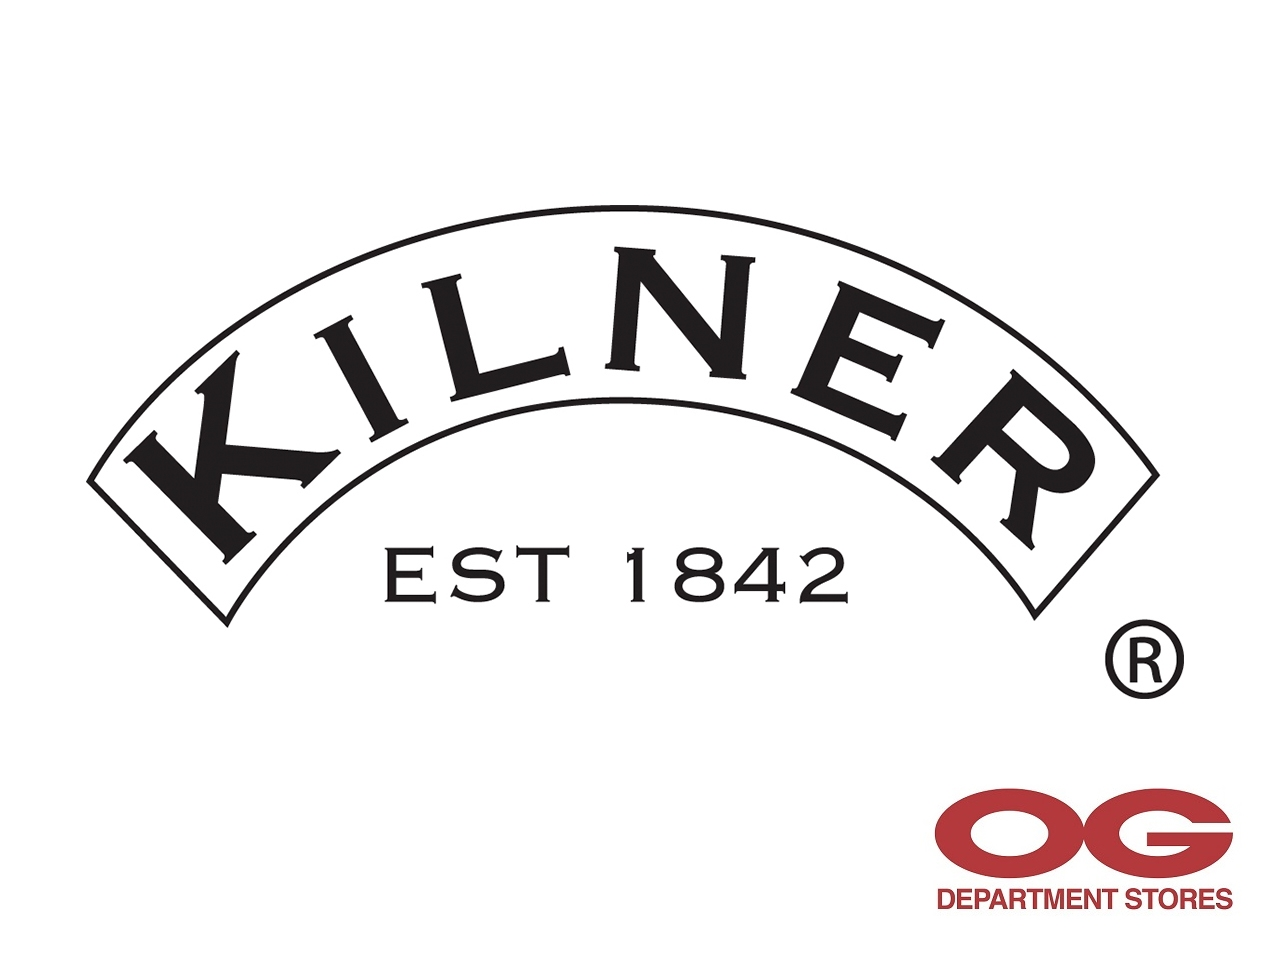 KILNER All Regular-Priced Items @ 30% + 5% off